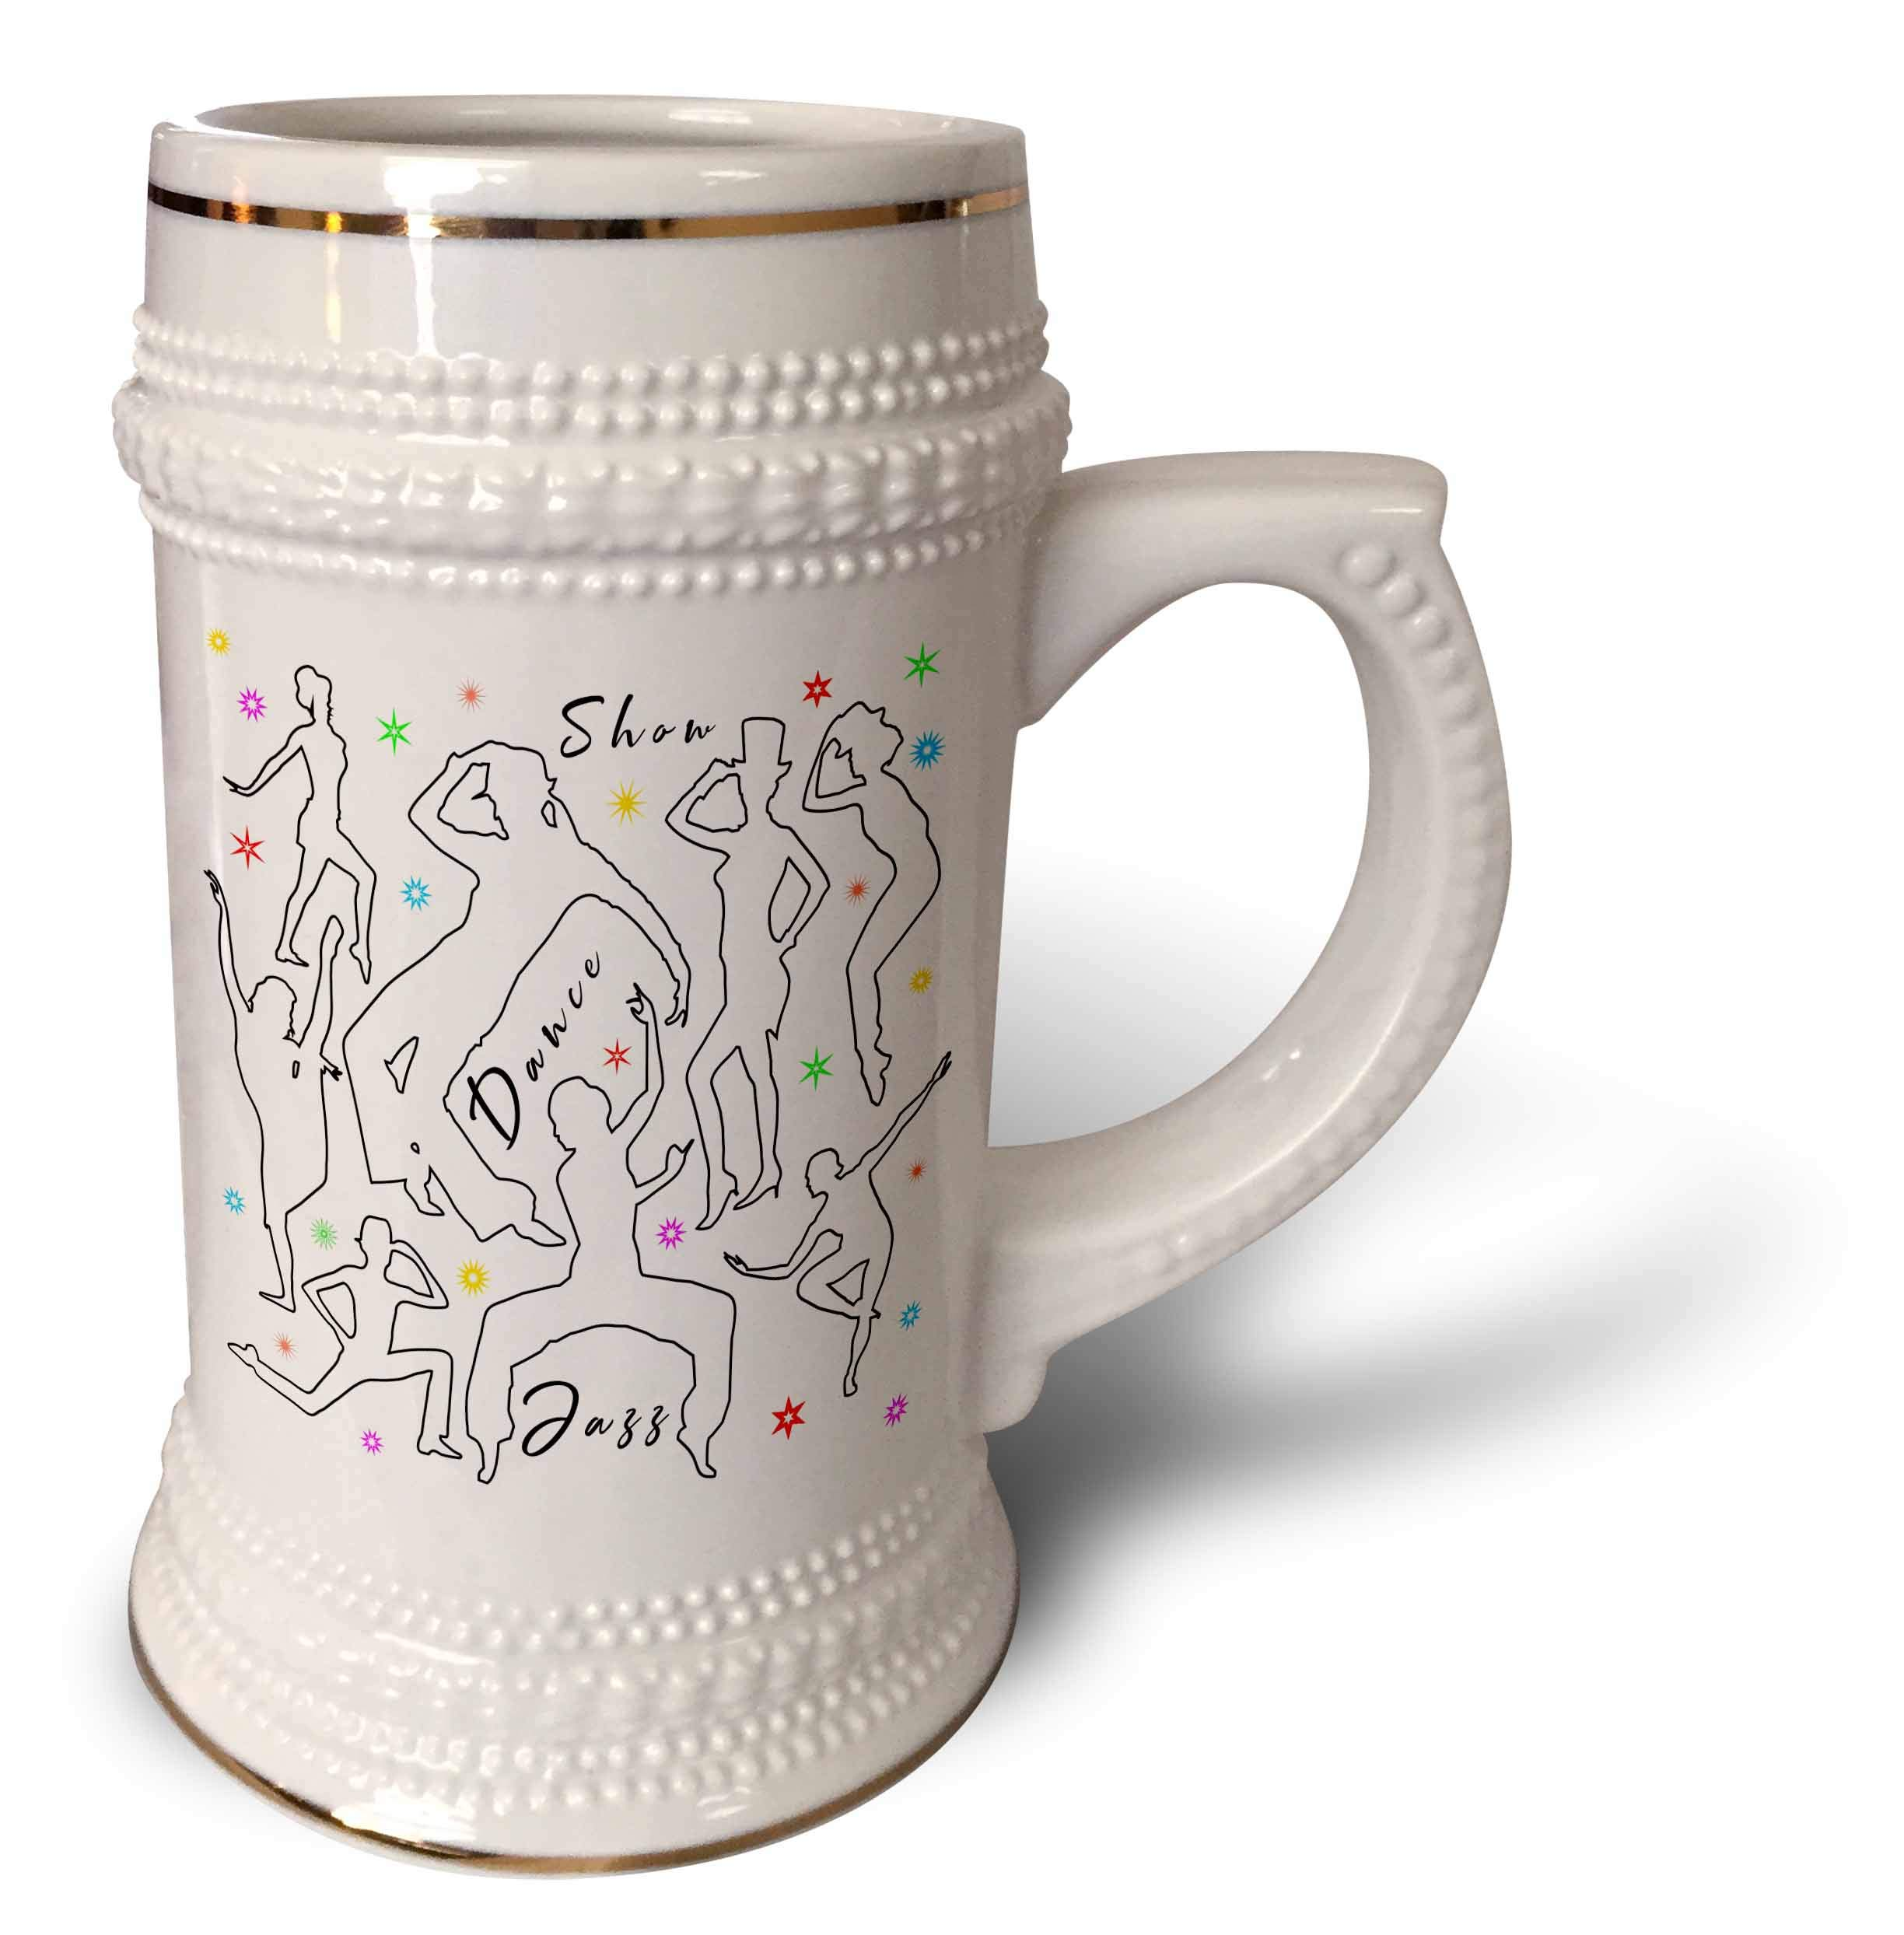 3dRose Alexis Design - Dance - Black outlined dancer silhouettes, colorful stars. Show, dance, jazz - 22oz Stein Mug (stn_295055_1)